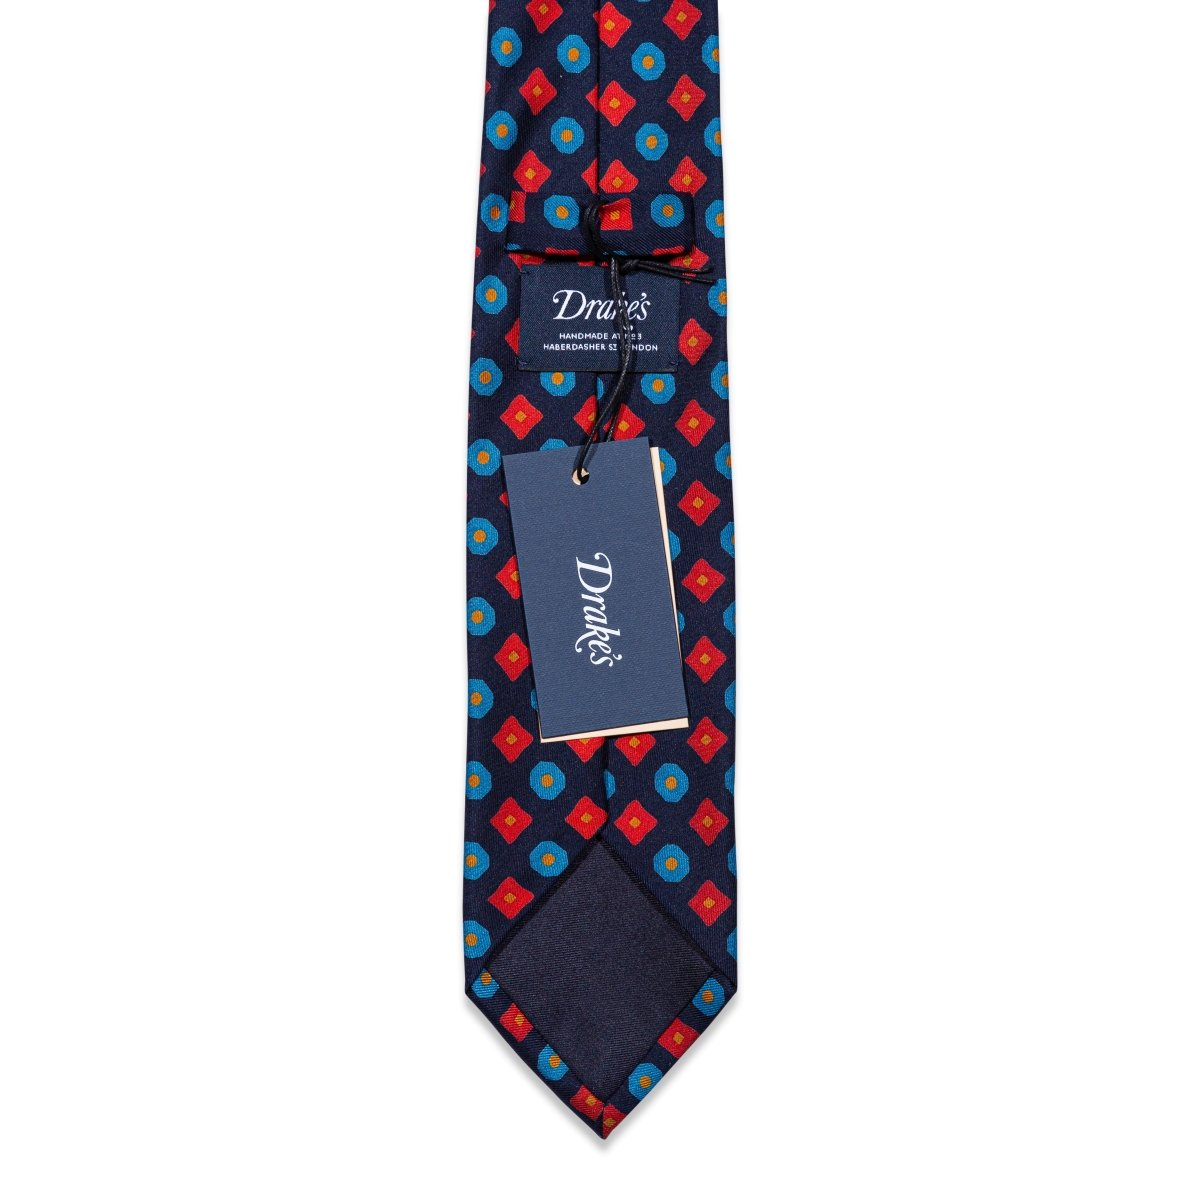 Drake's - Das, Blue & Red Pattern, Dassen | NEW TAILOR Webshop